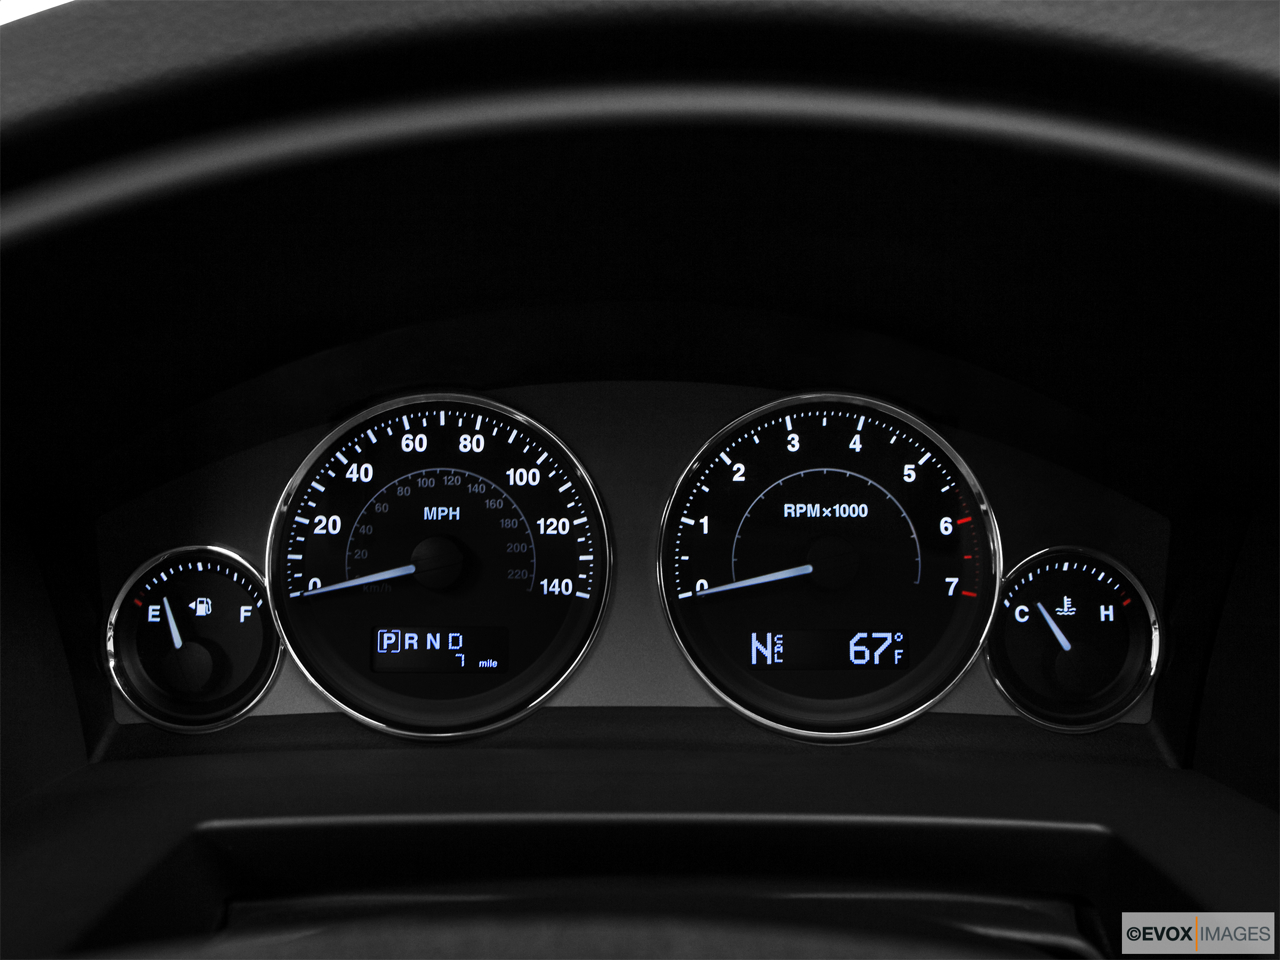 2010 Jeep Commander Limited Speedometer/tachometer.